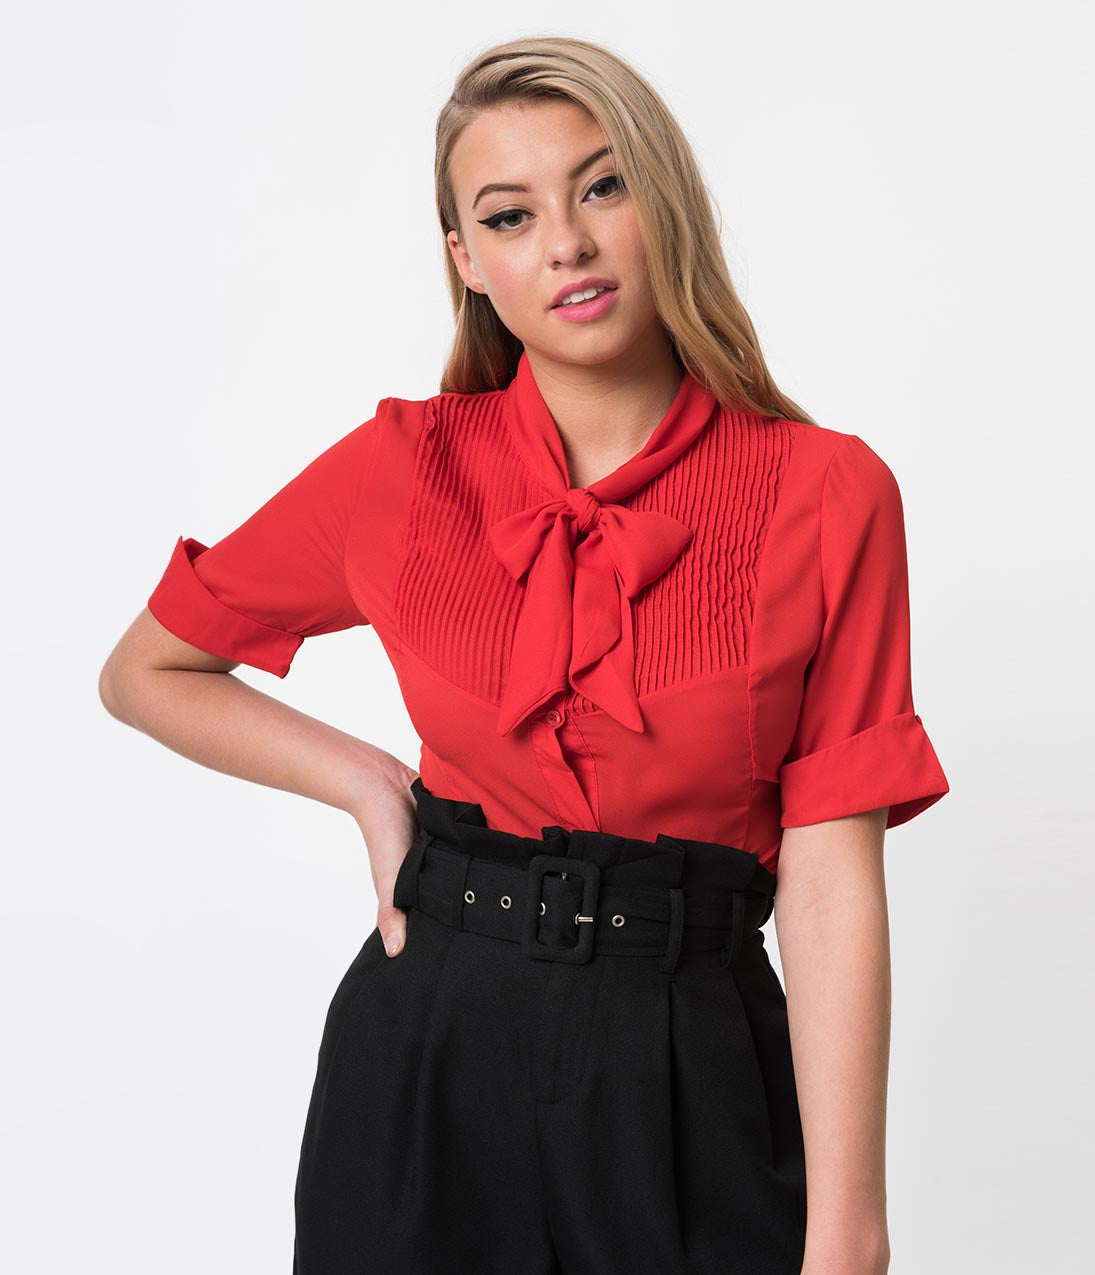 Vintage & Retro Shirts, Halter Tops, Blouses 1940S Style Red Chiffon Short Sleeve Neck Tie Blouse $38.00 AT vintagedancer.com